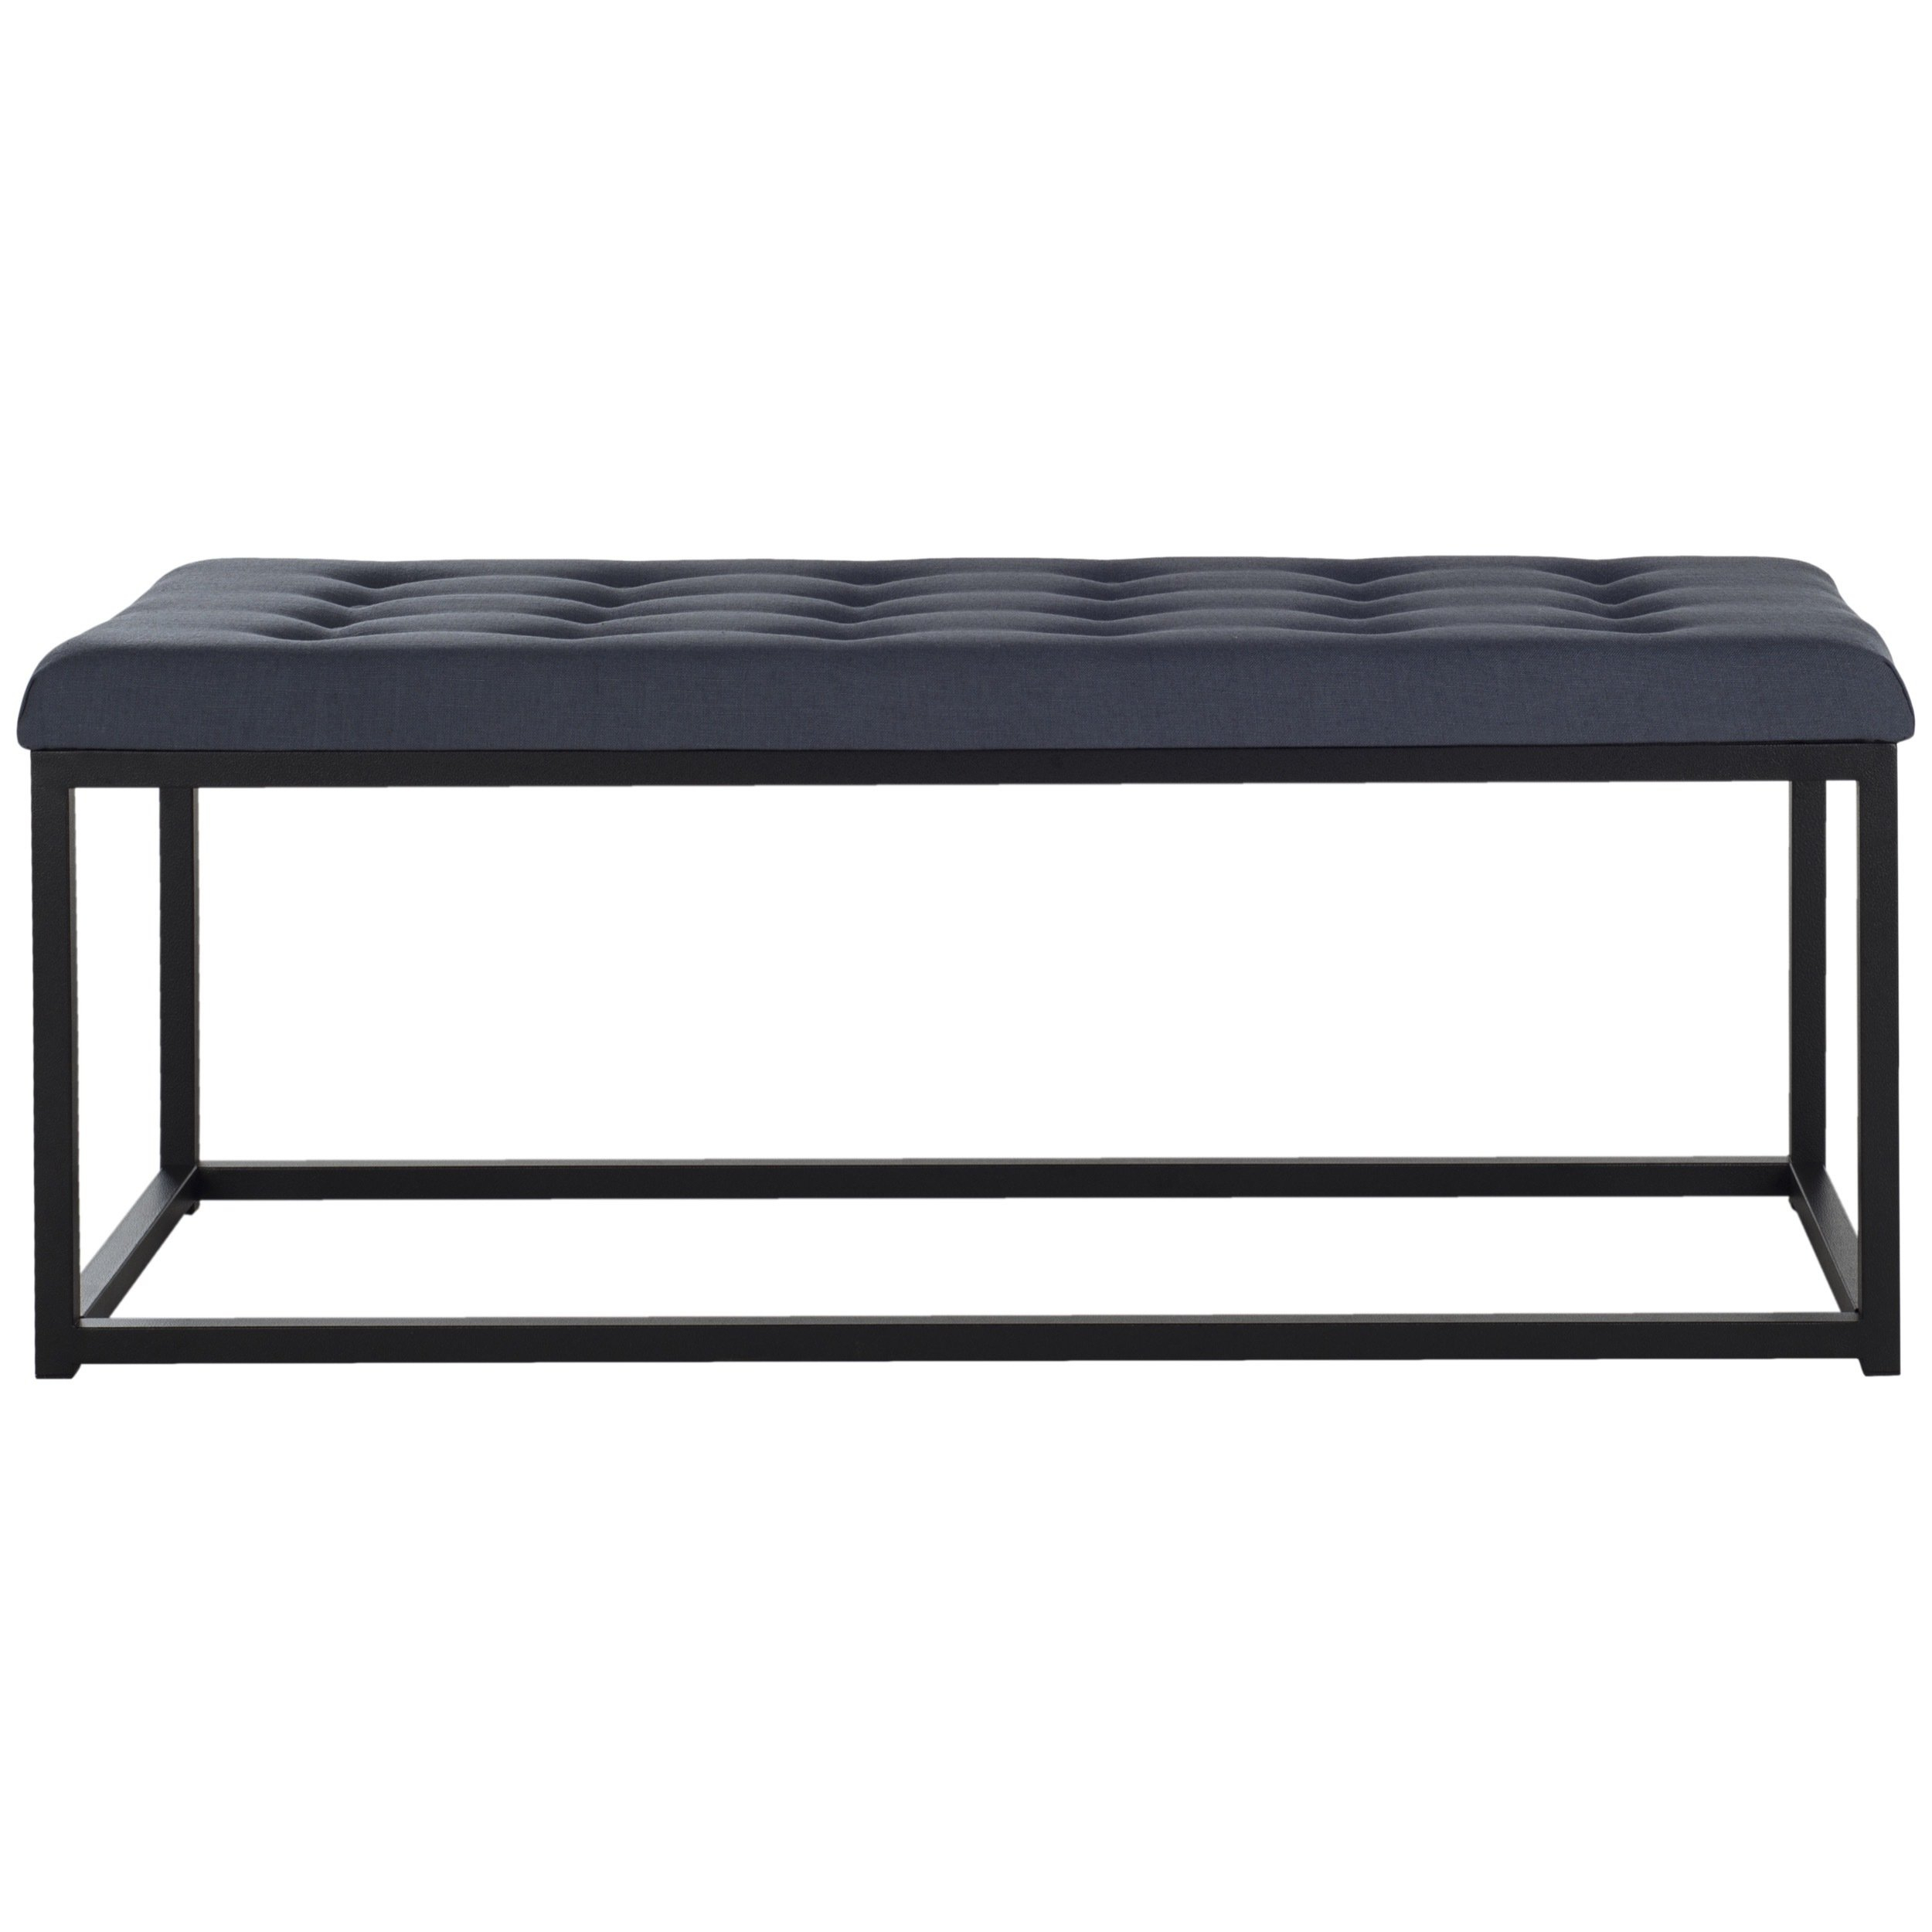 Shop Safavieh Reynlds Navy/ Black Bench – Free Shipping Today With Parsons Black Marble Top & Dark Steel Base 48x16 Console Tables (View 21 of 30)